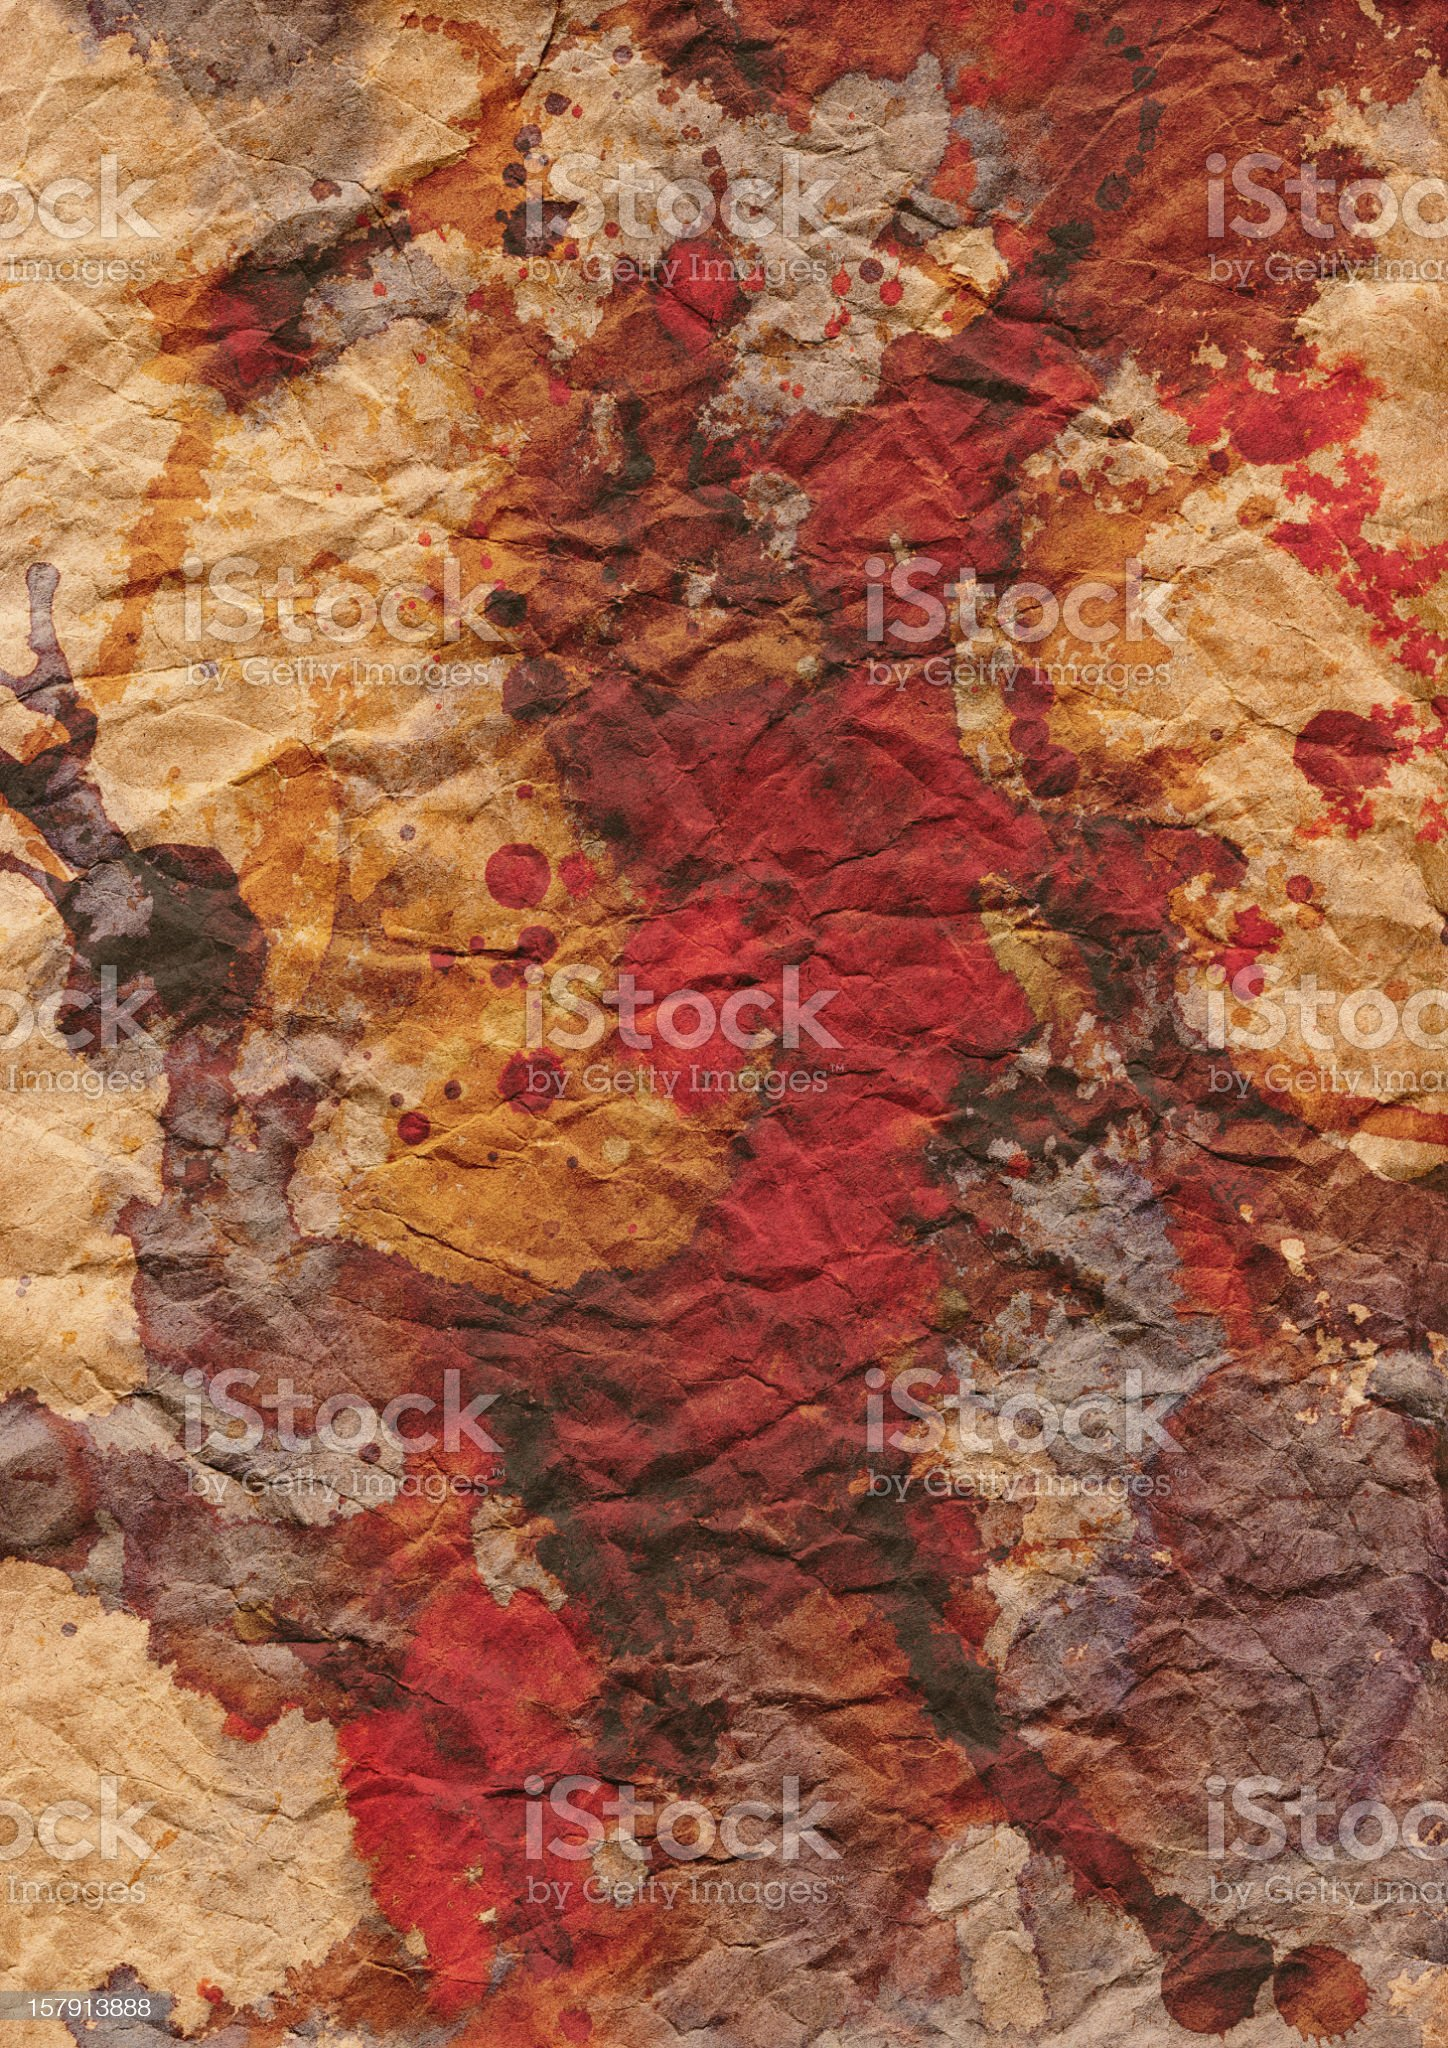 Hi-Res Brown Wrapping Kraft Paper Crumpled Multicolored Mottled Grunge Texture royalty-free stock photo